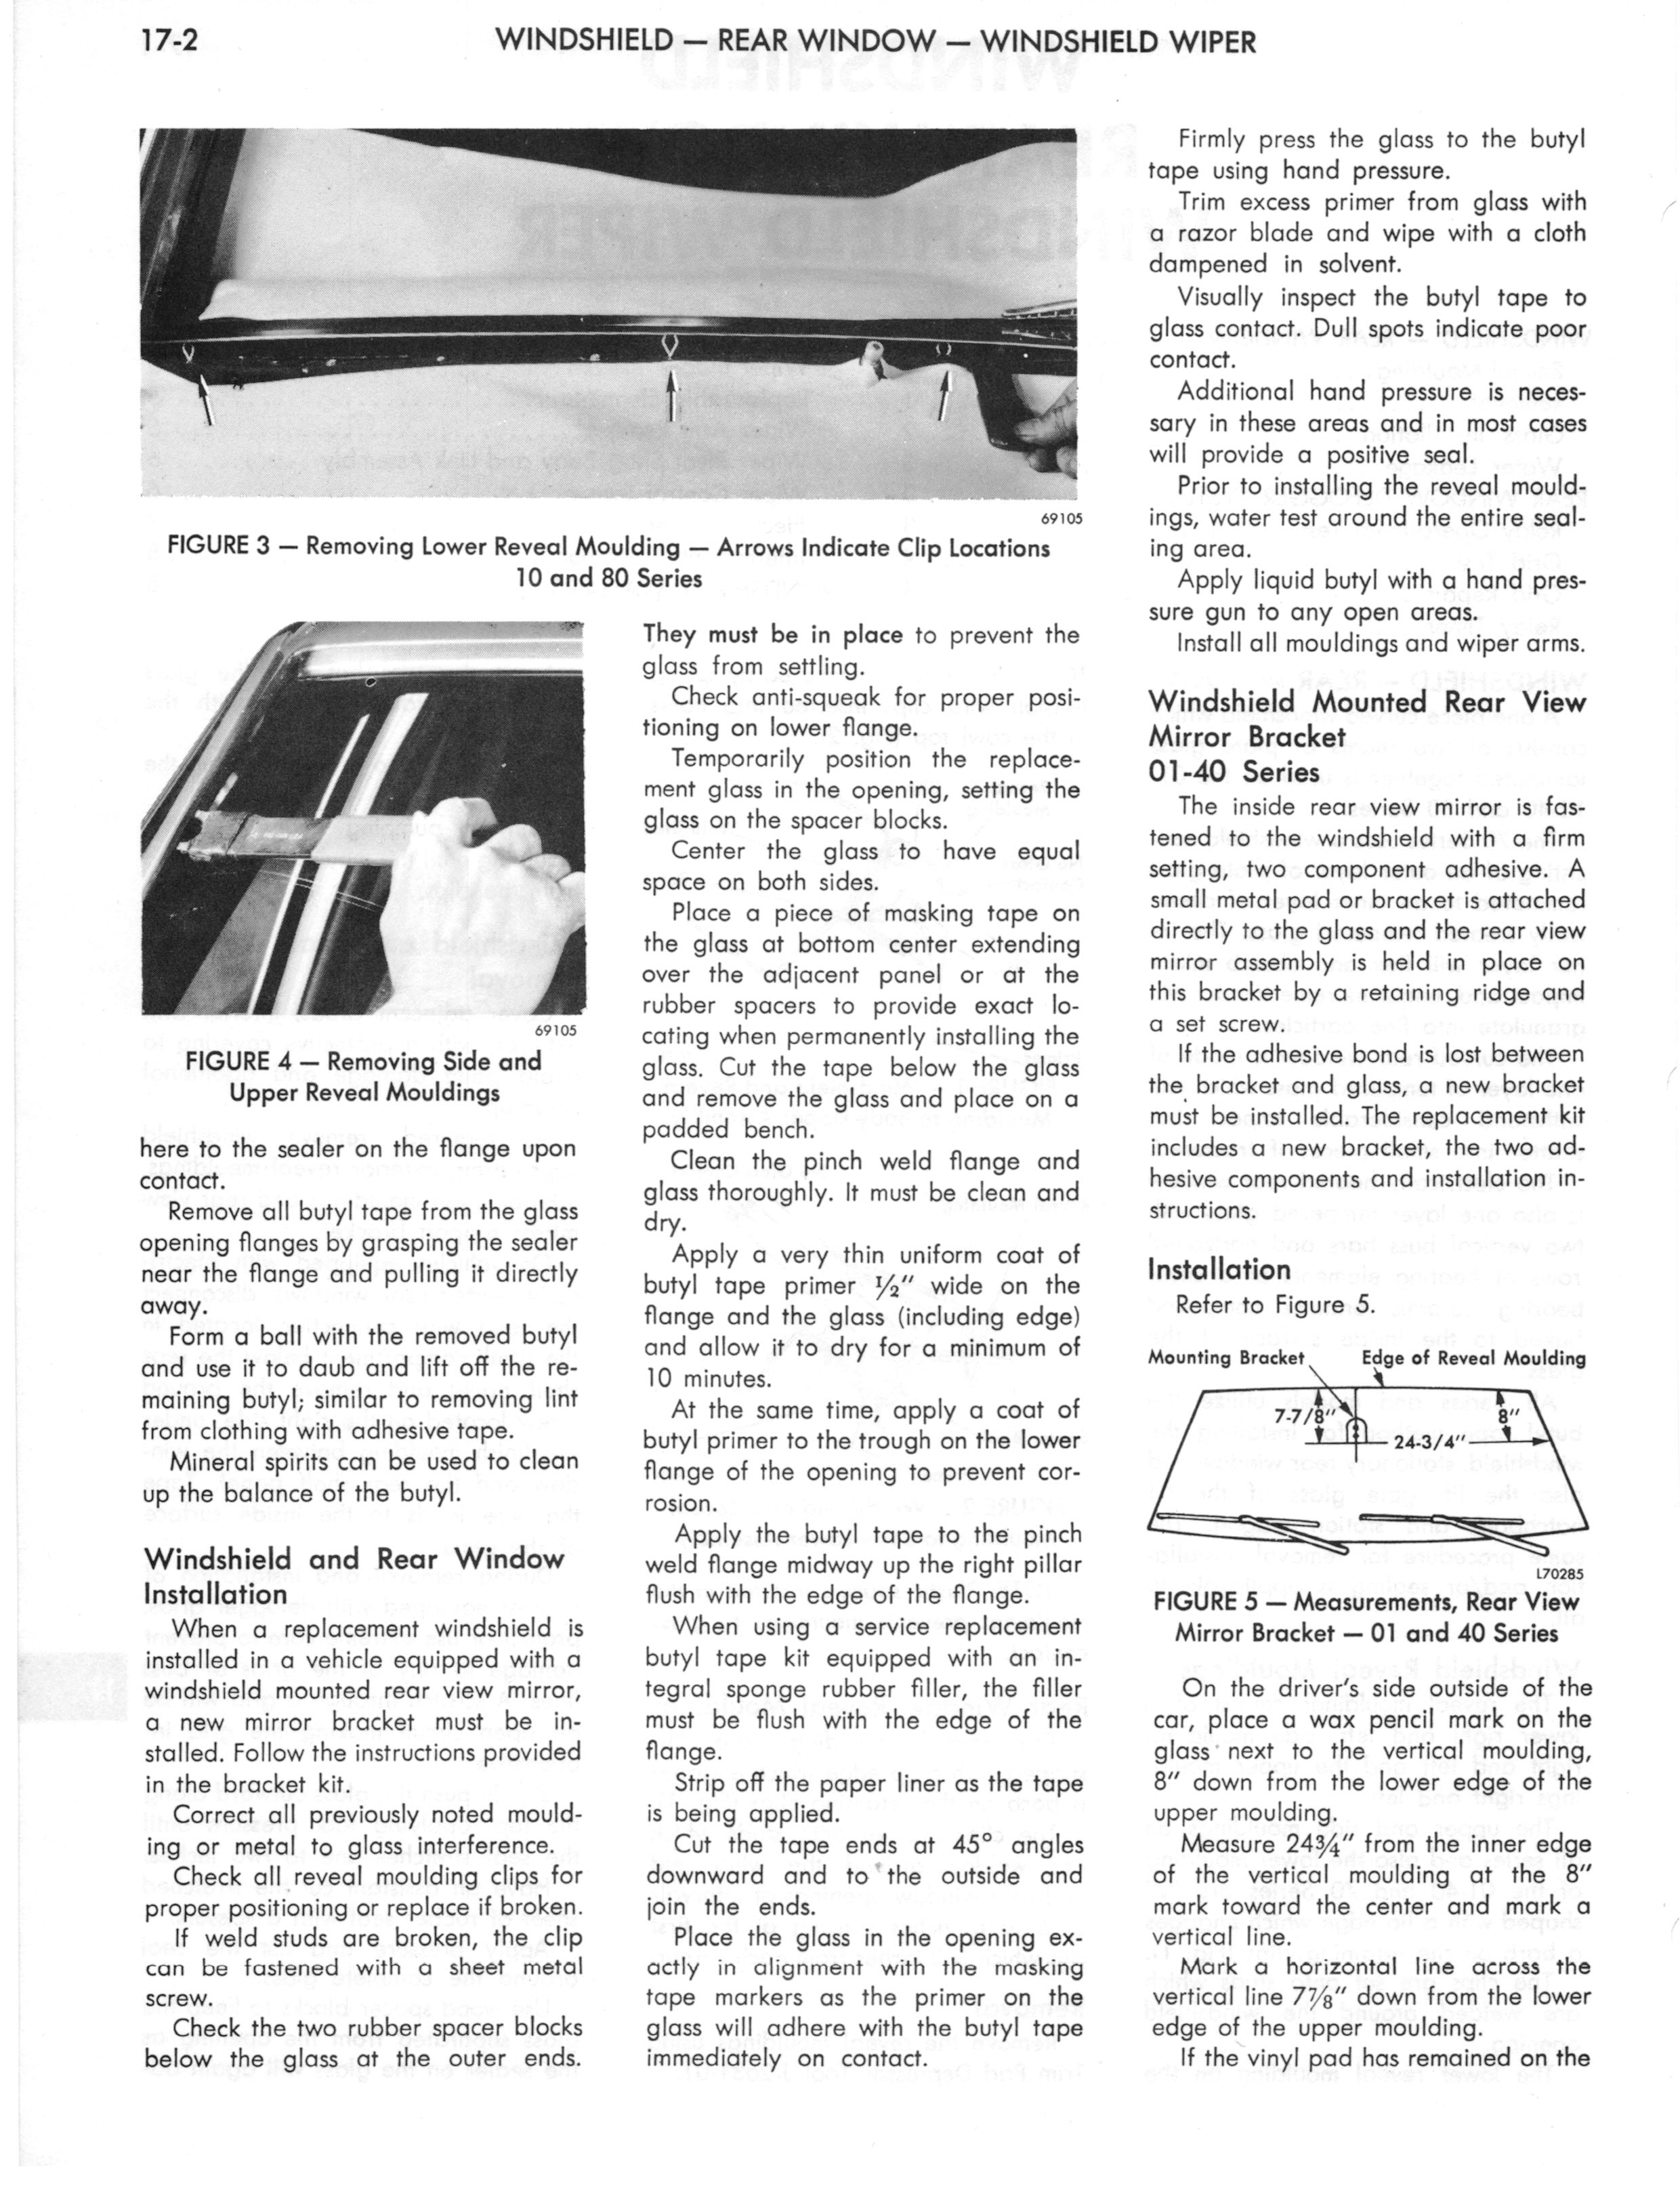 1973 AMC Technical Service Manual page 438 of 487